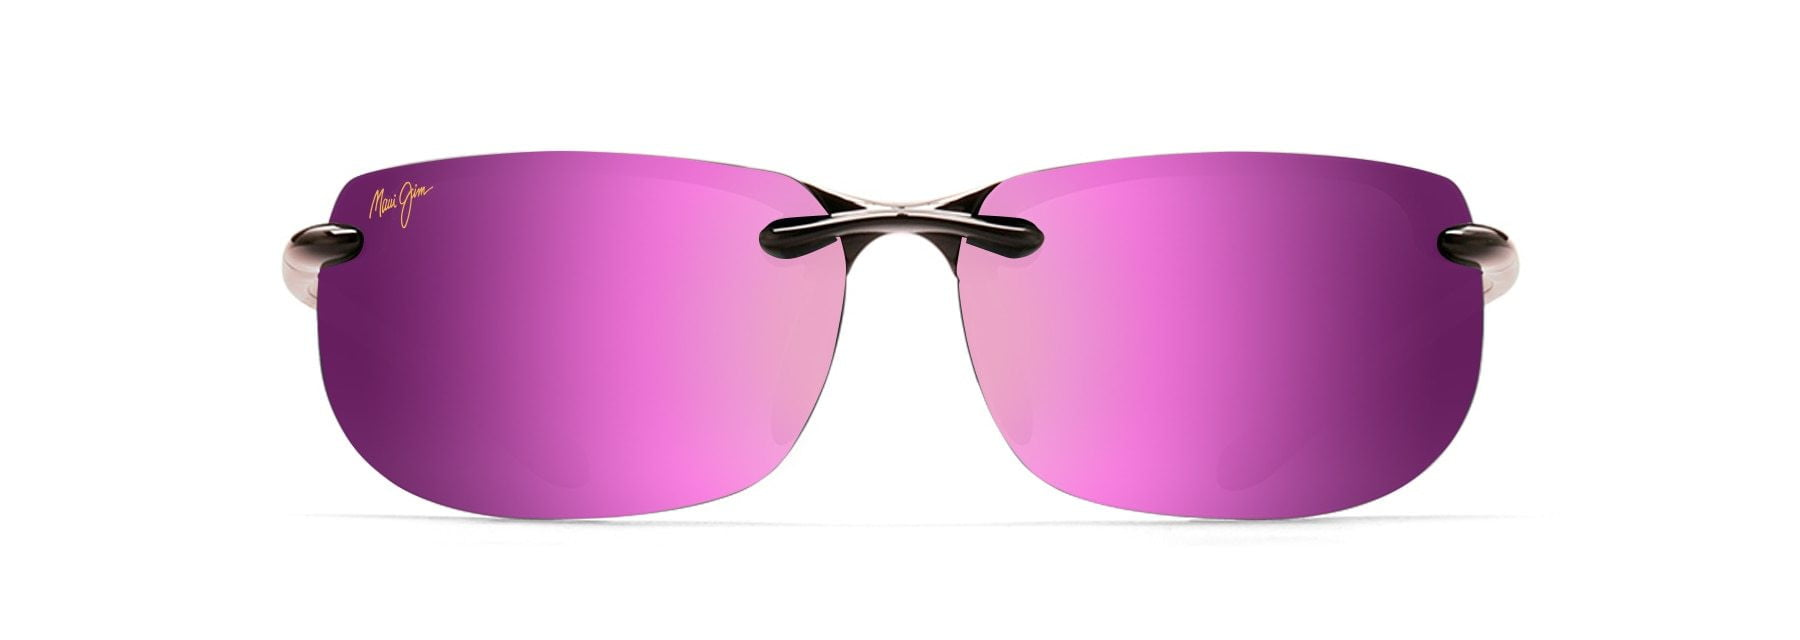 MyMaui Banyans MM412-011 Sunglasses